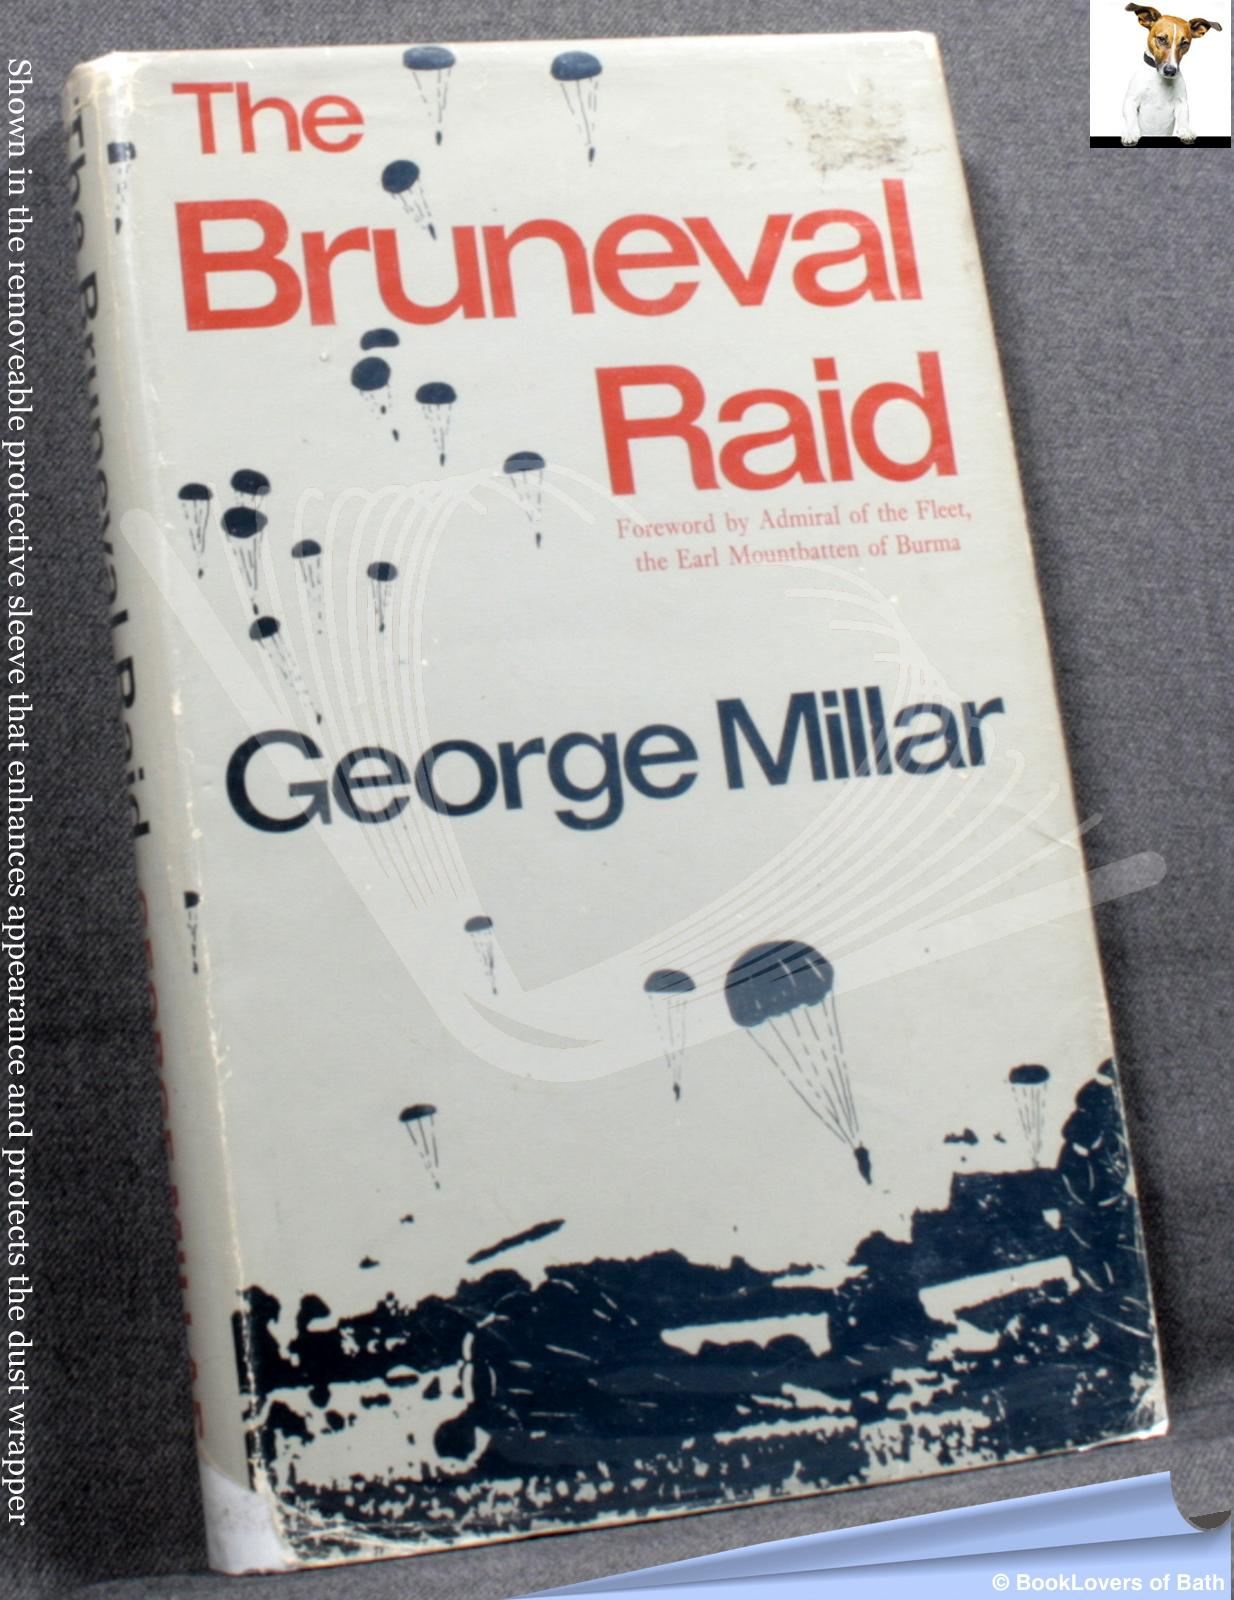 The Bruneval Raid: Flashpoint of the Radar War - George Millar